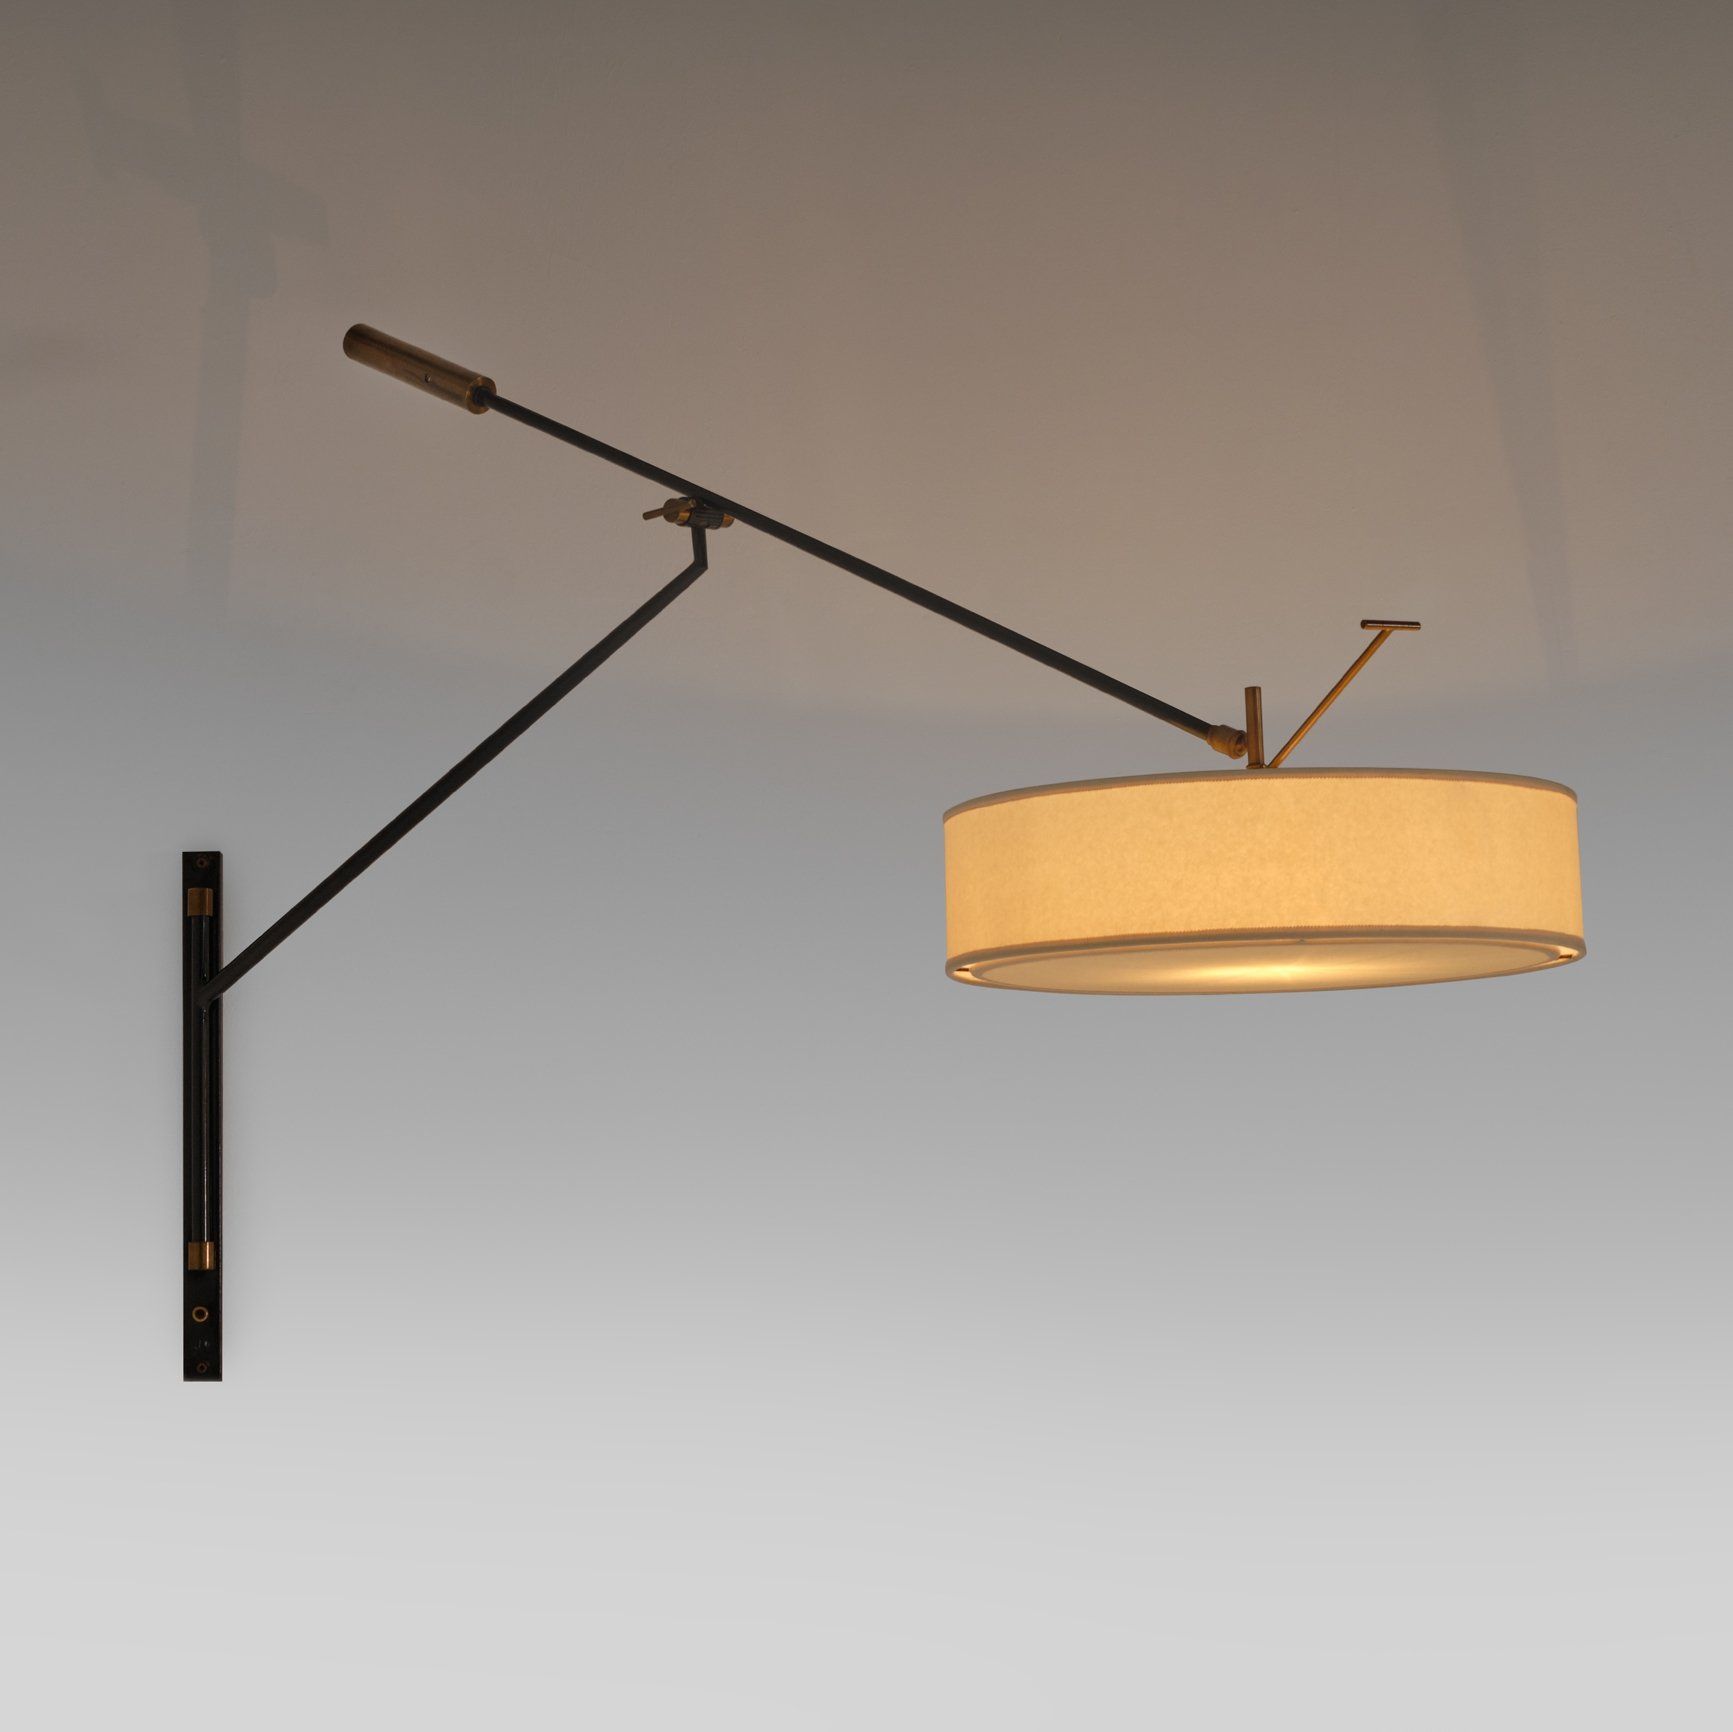 Large Adjustable Wall Lamp By Arlus France 1950 S 141278